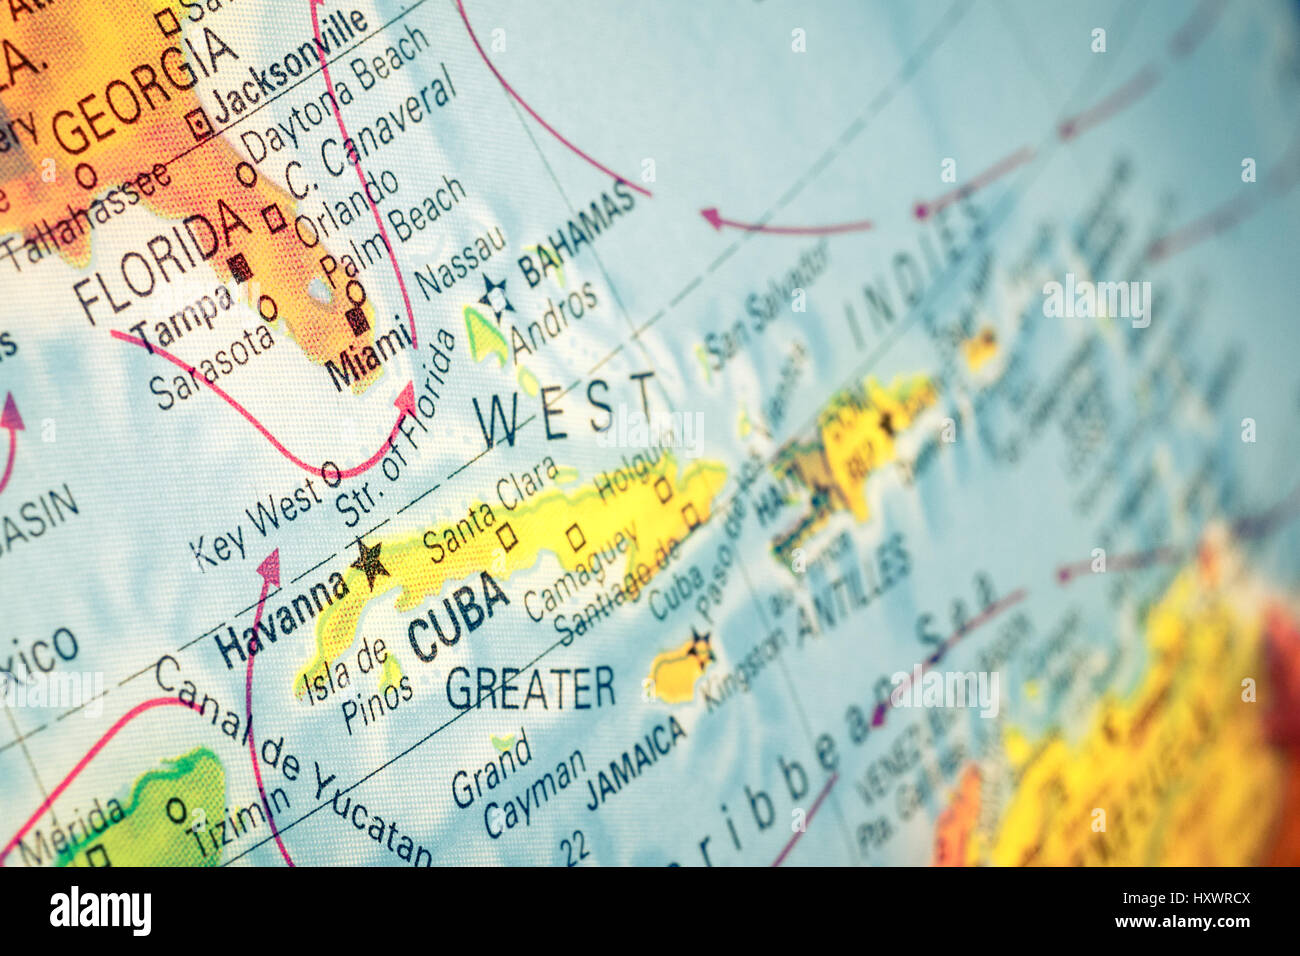 Map cuba and florida close up macro image of cuban map selective map cuba and florida close up macro image of cuban map selective focus gumiabroncs Image collections